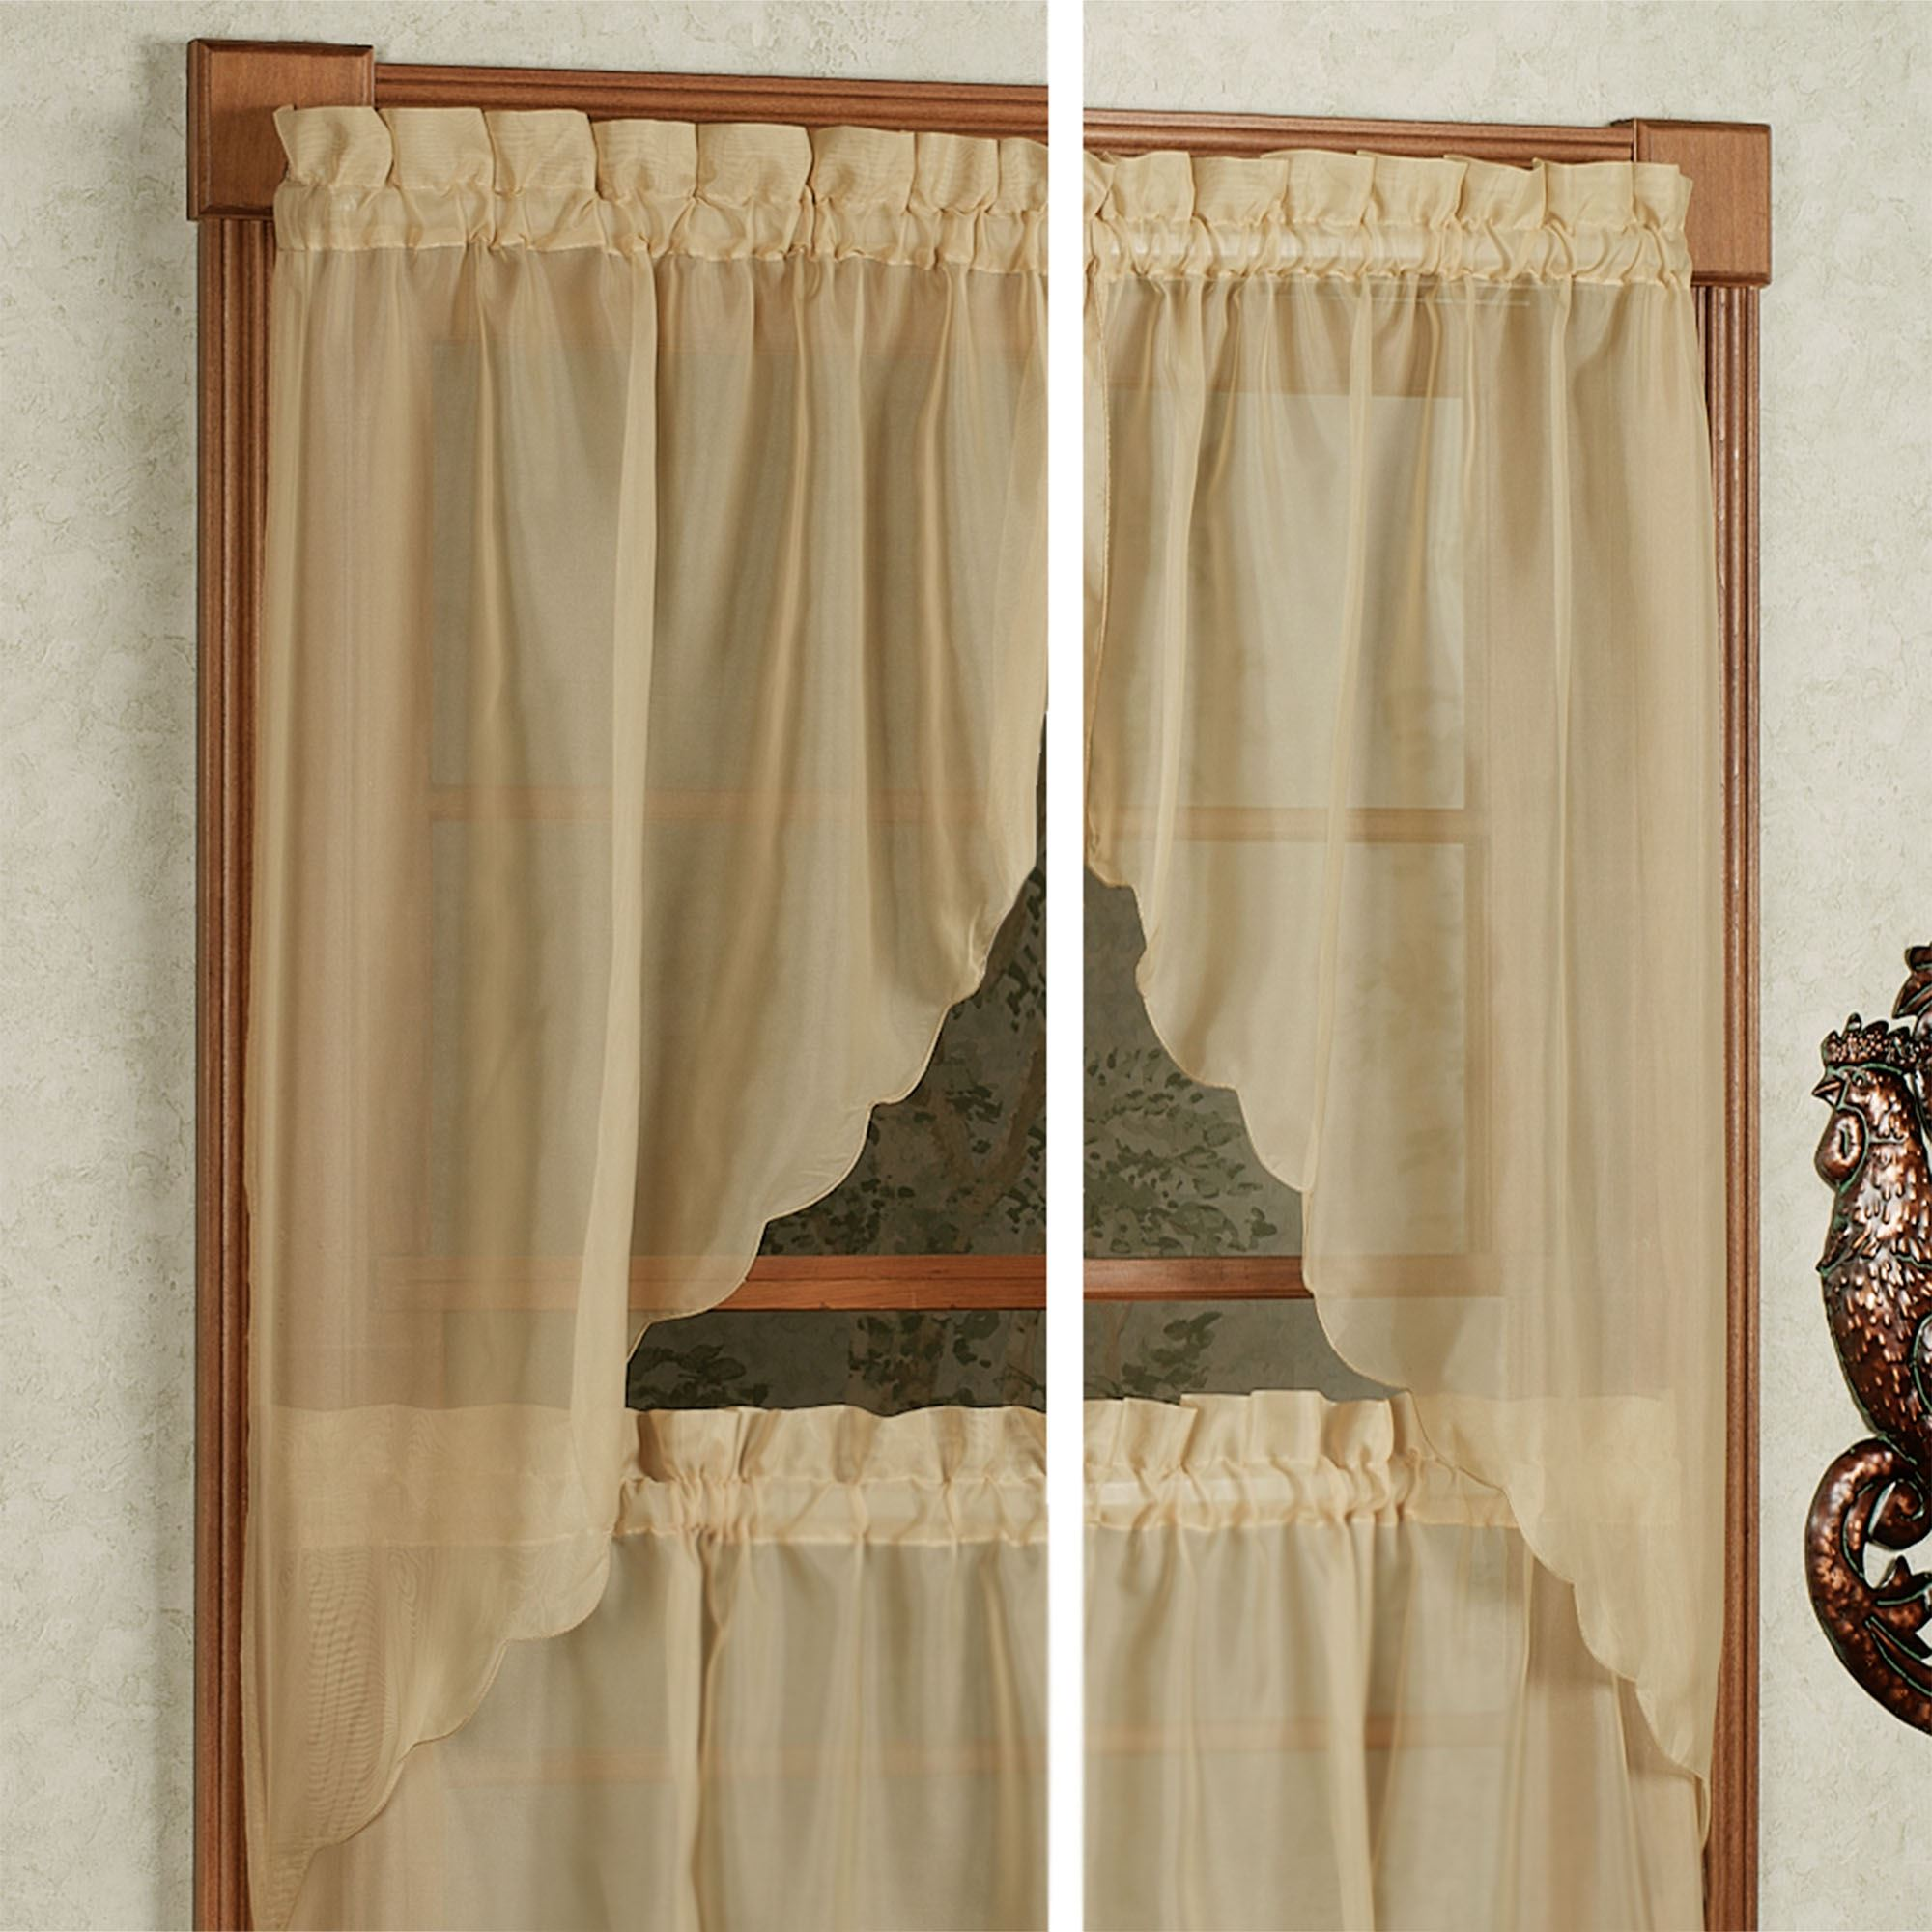 for curtains valances windows valance deer the treatments cabin window